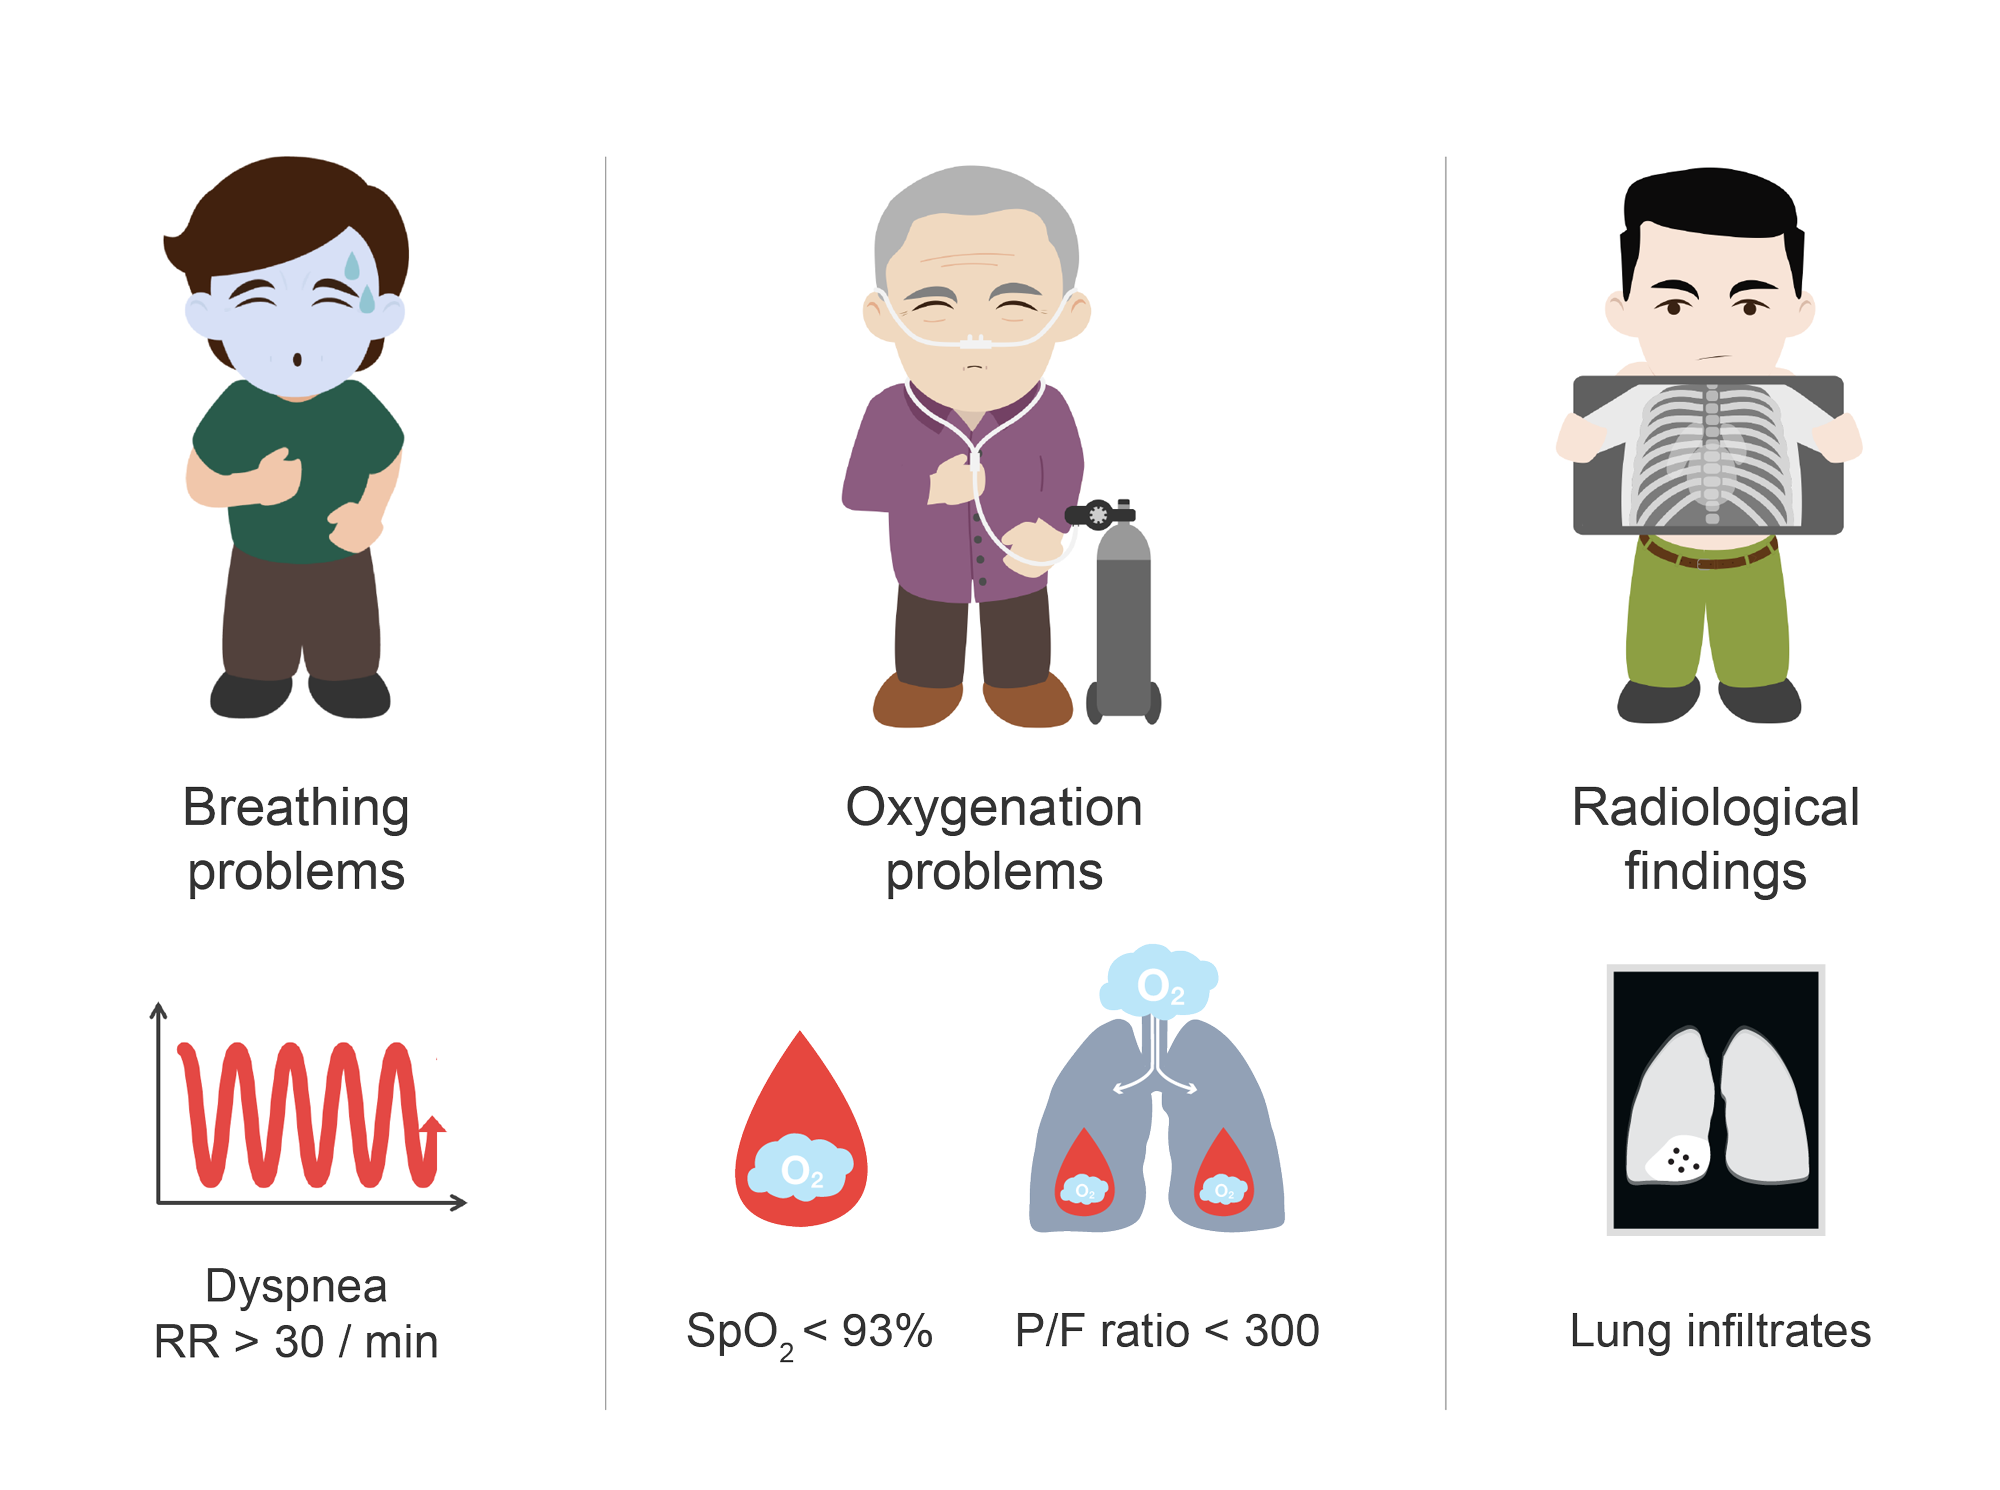 Clinical characteristics of severe COVID-19 patients. Illustration.